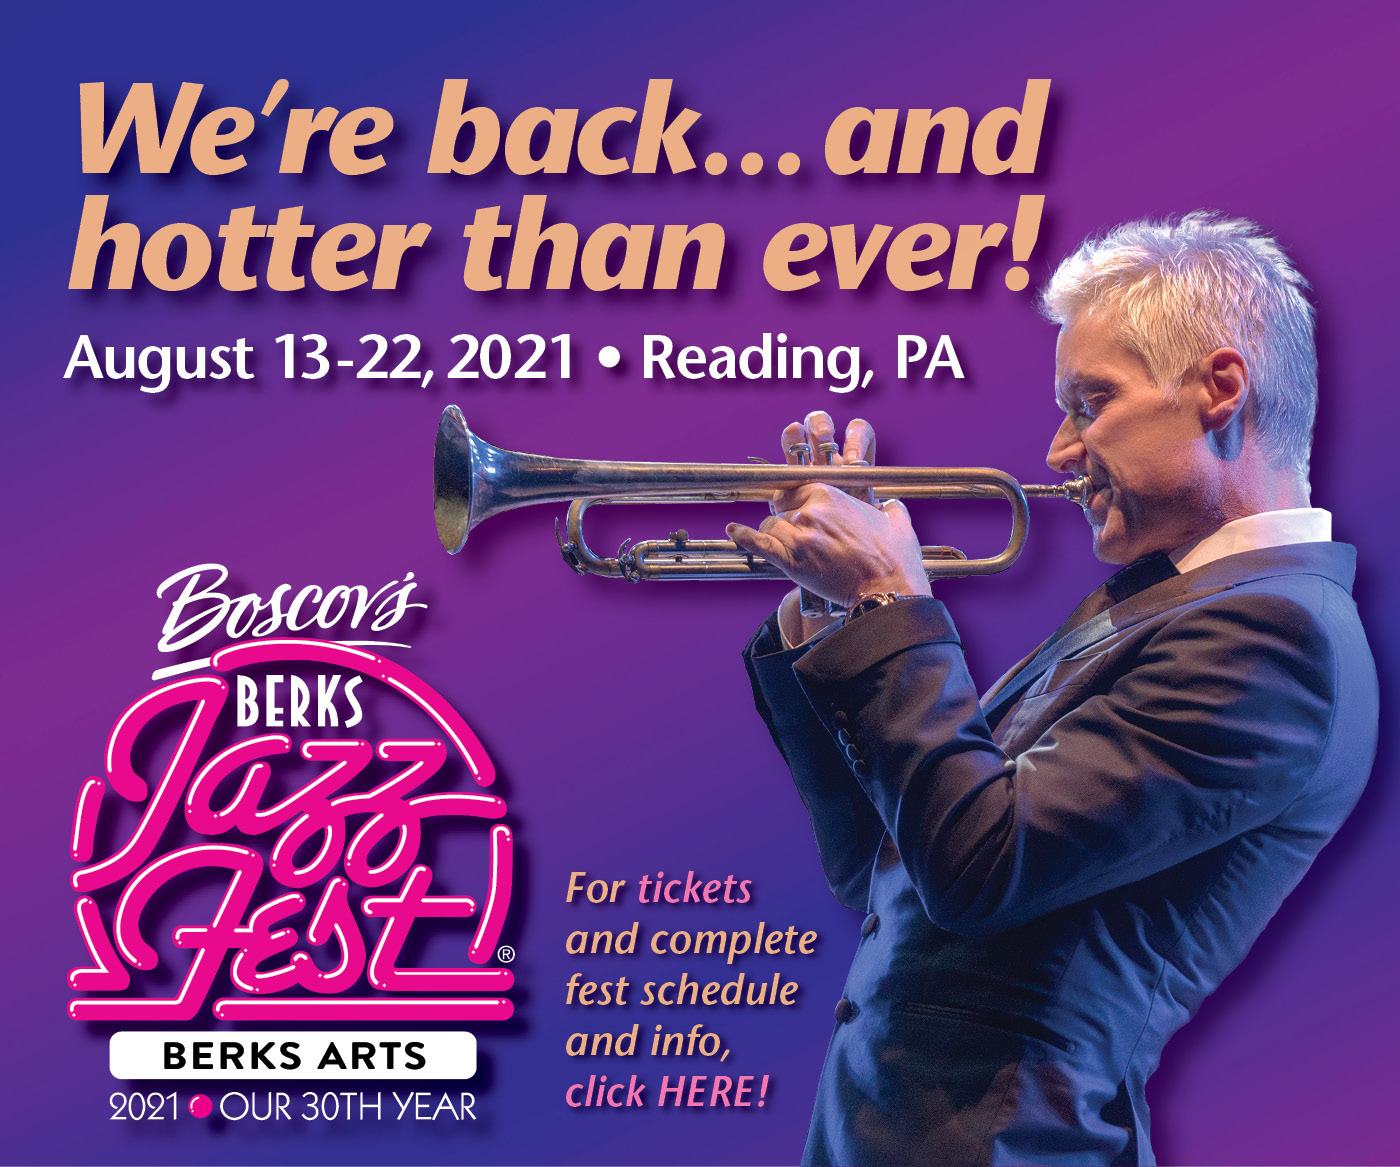 We're back... and hotter than ever! Berks JazzFest. August 13-22, 2021. Reading, PA. For tickets and complete fest schedule and info, click HERE!